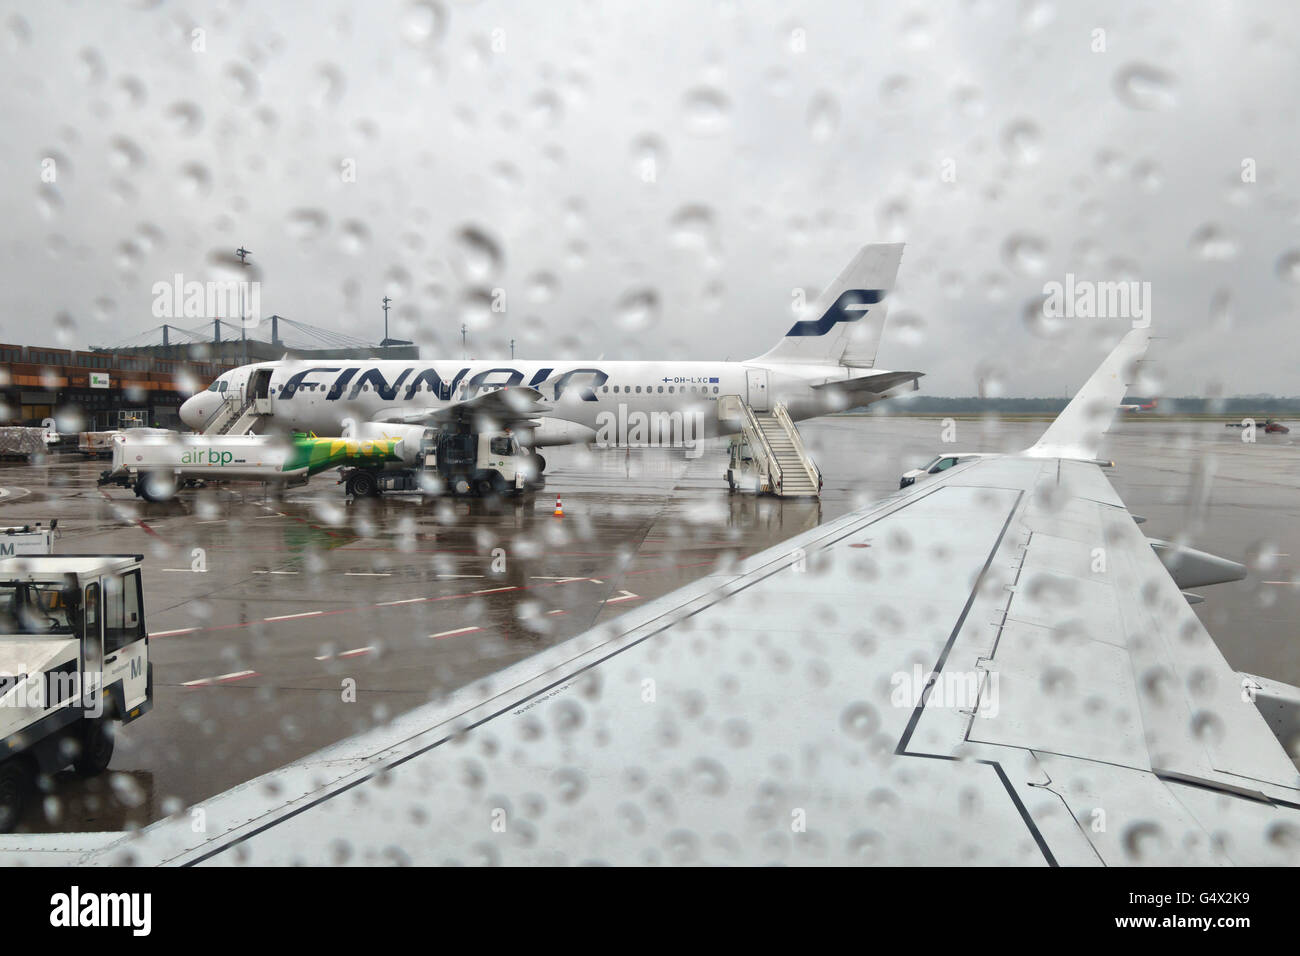 Tegel Airport, Berlin, Germany. A rainy day on the airfield - Stock Image